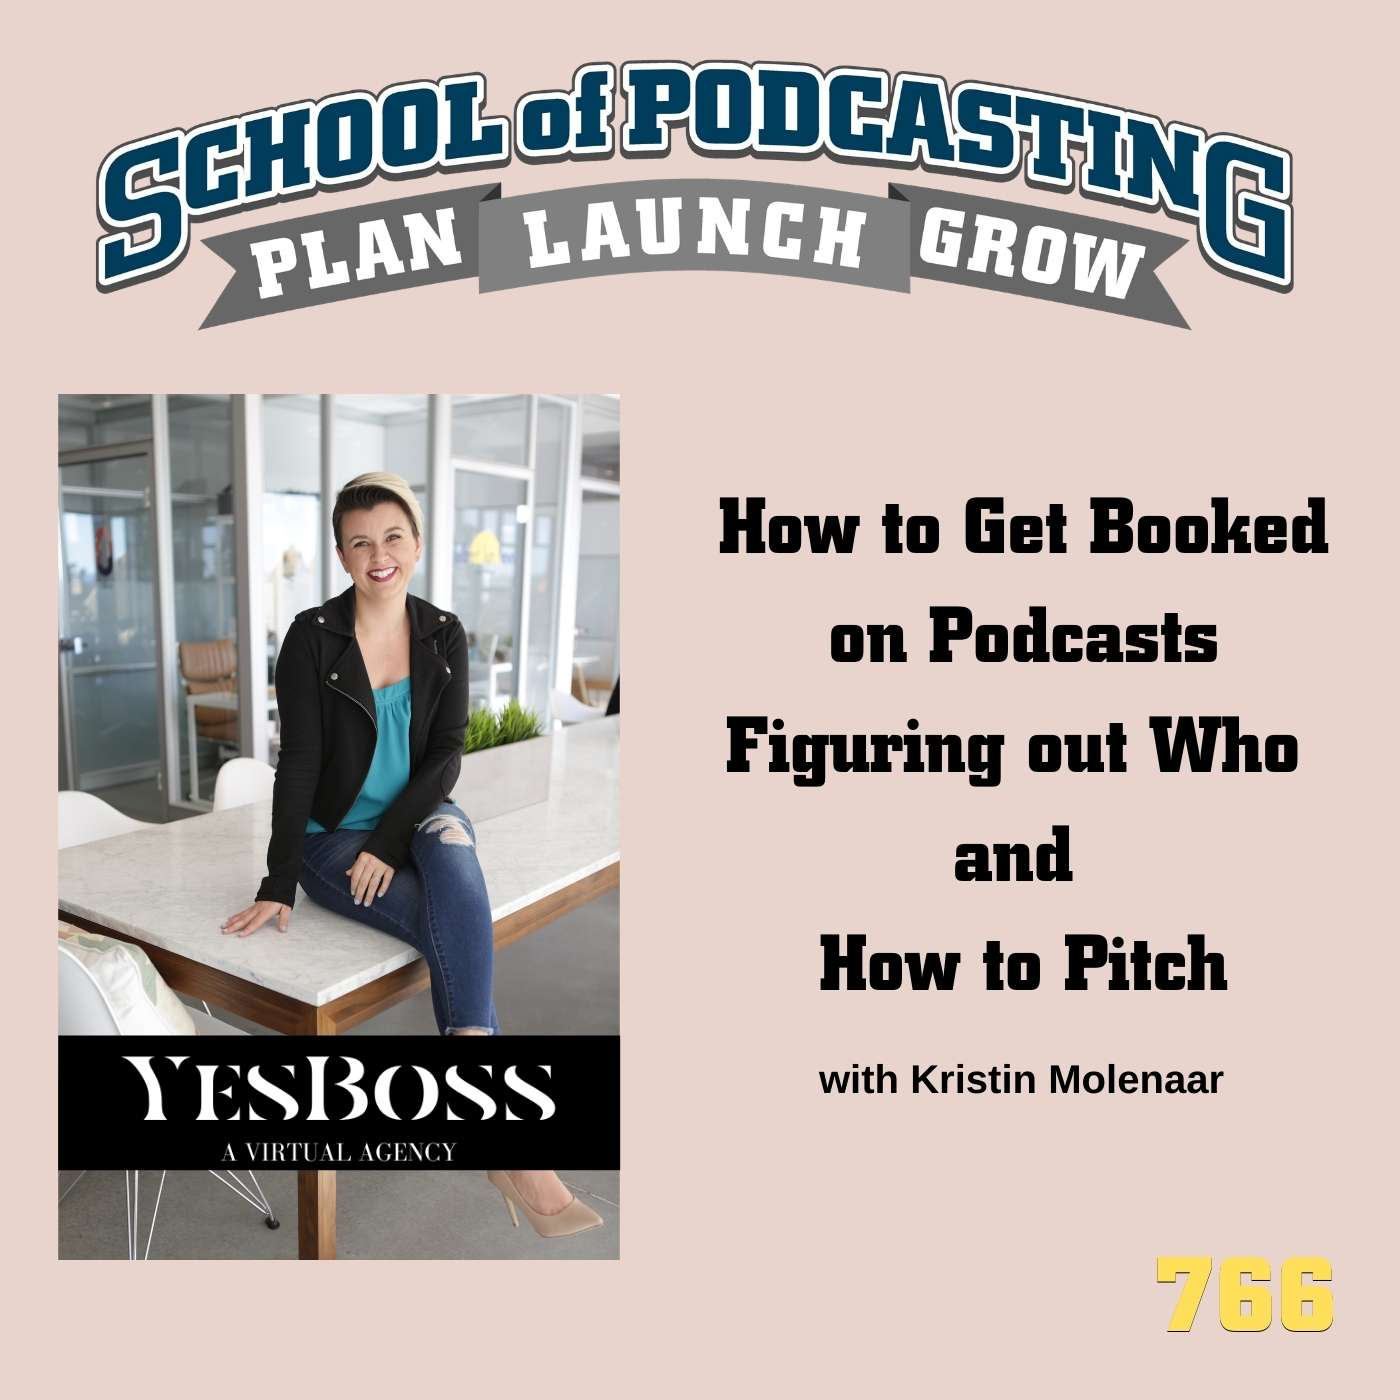 How to Get Booked on Podcasts: Figuring out Who and How to Pitch with Kristin Molenaar